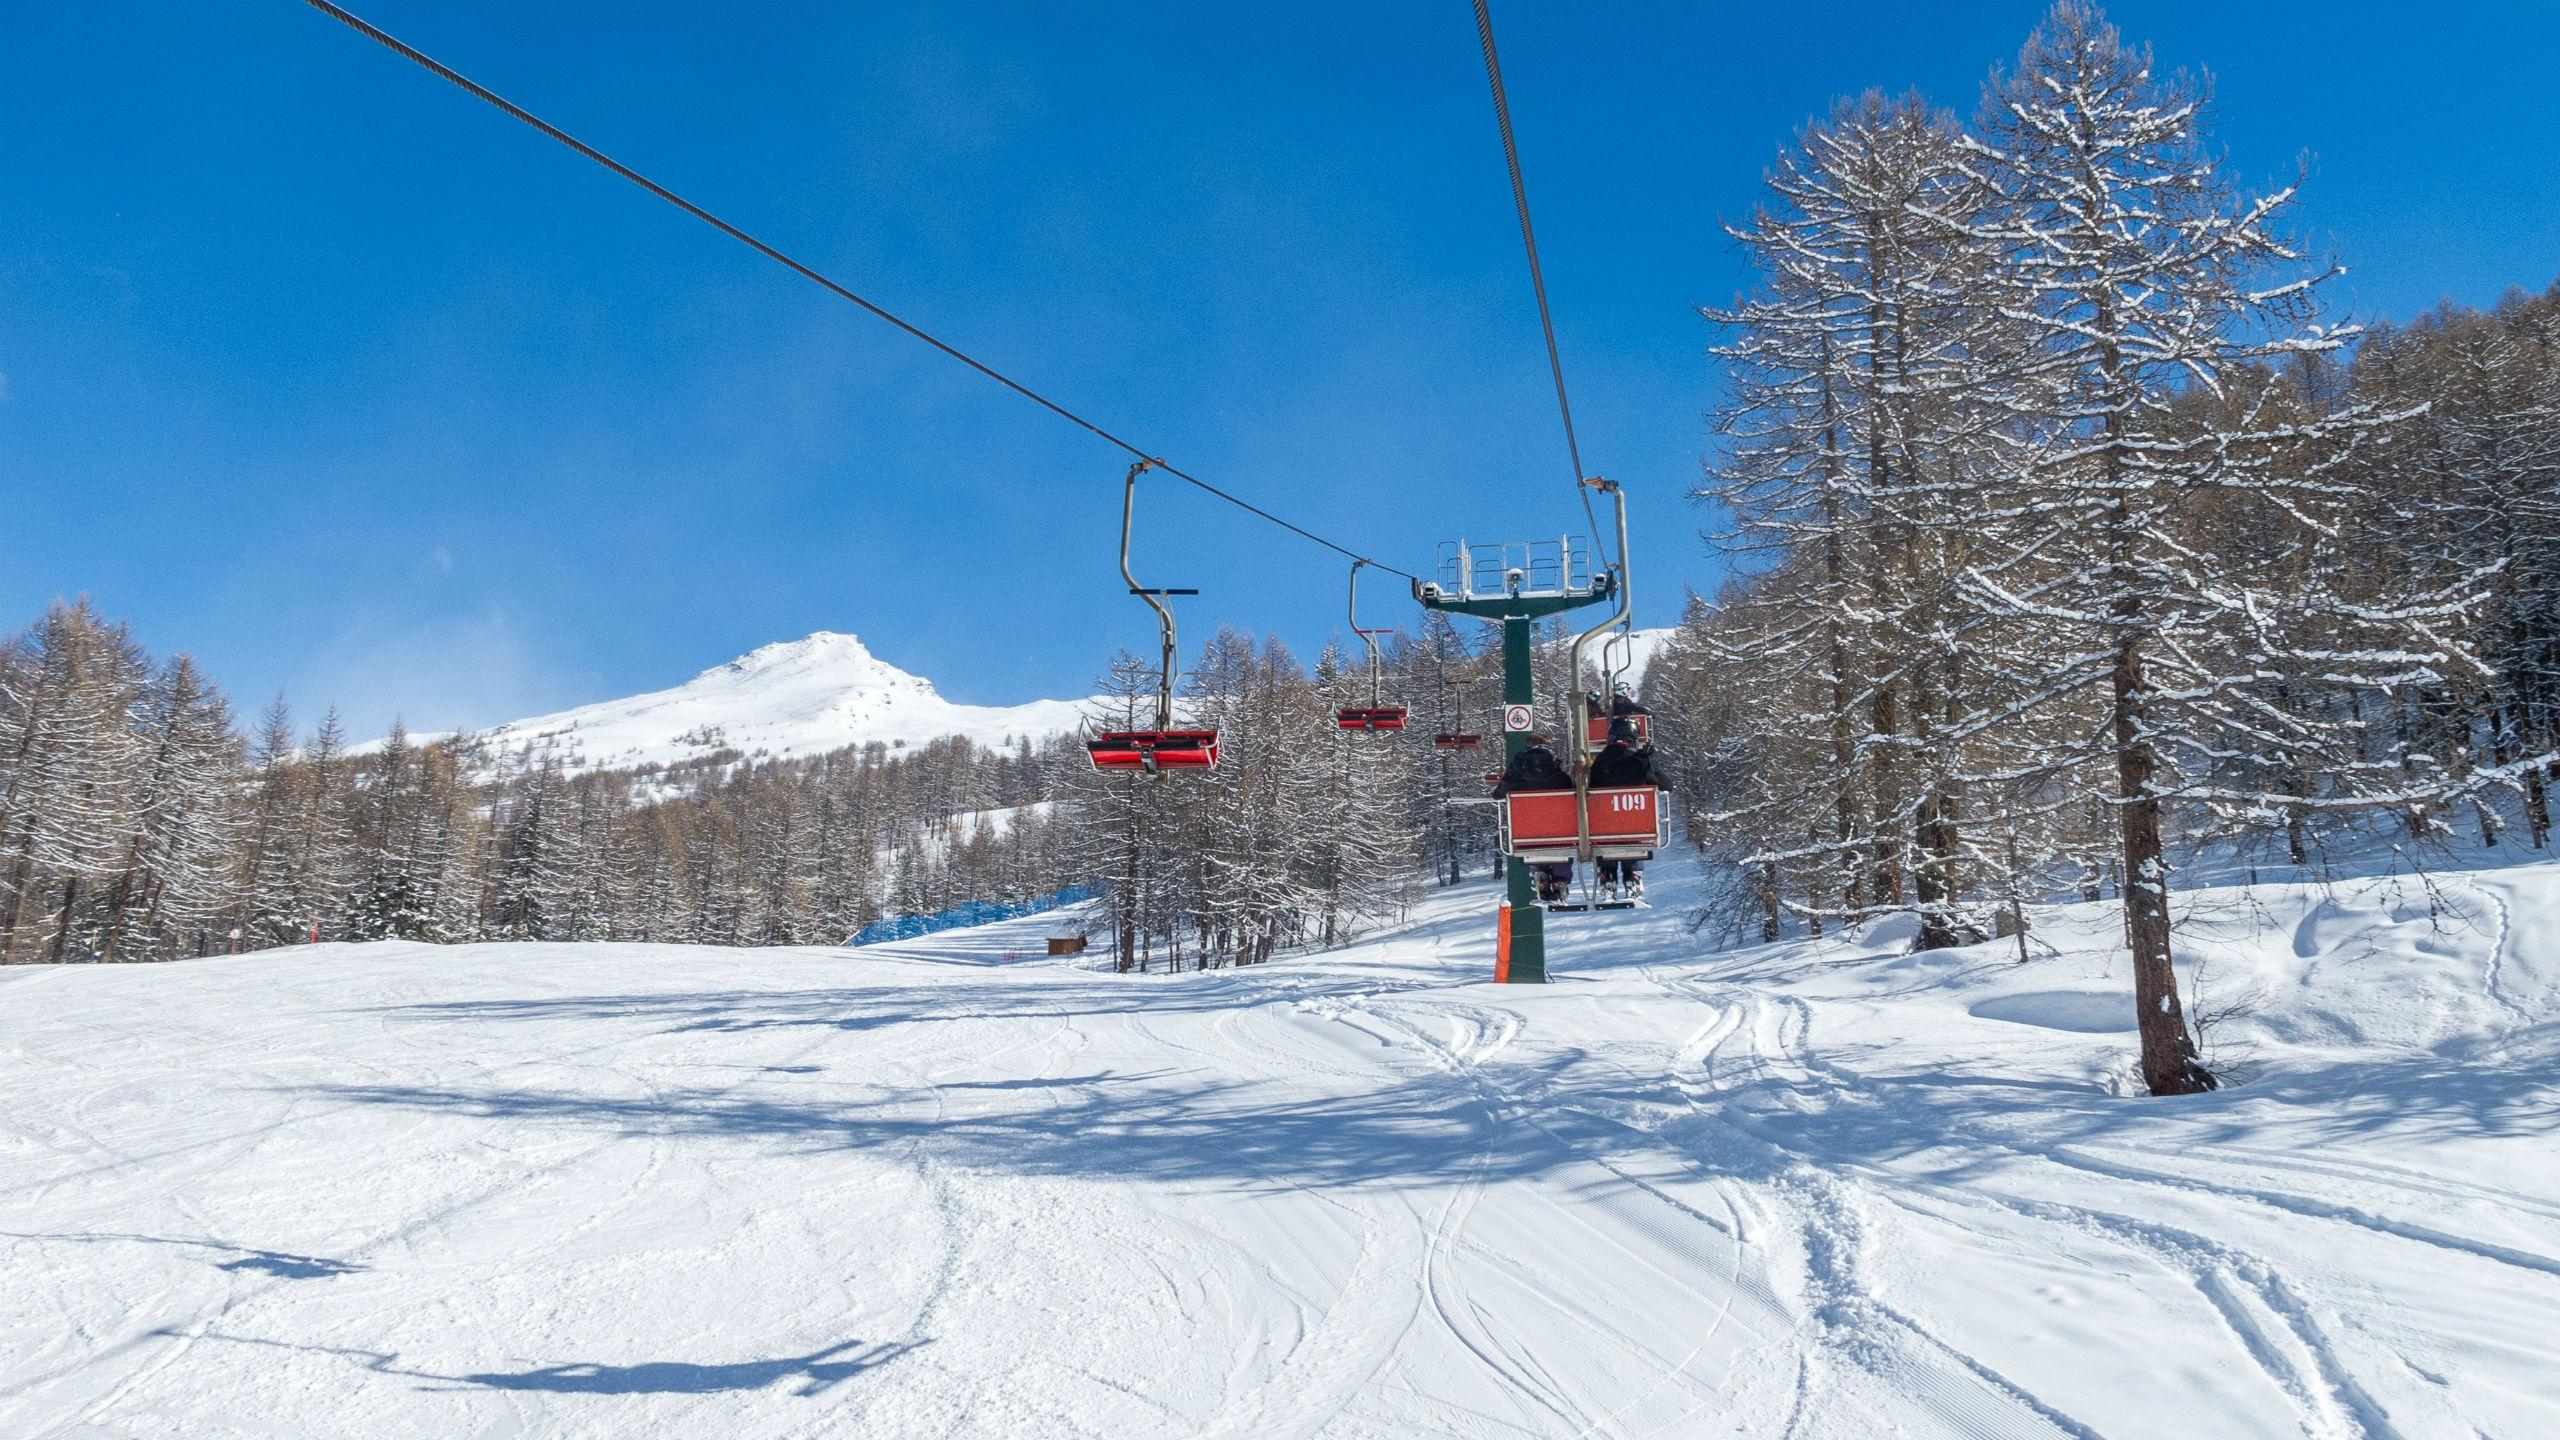 two skiers on a beginner ski lift in bardonecchia